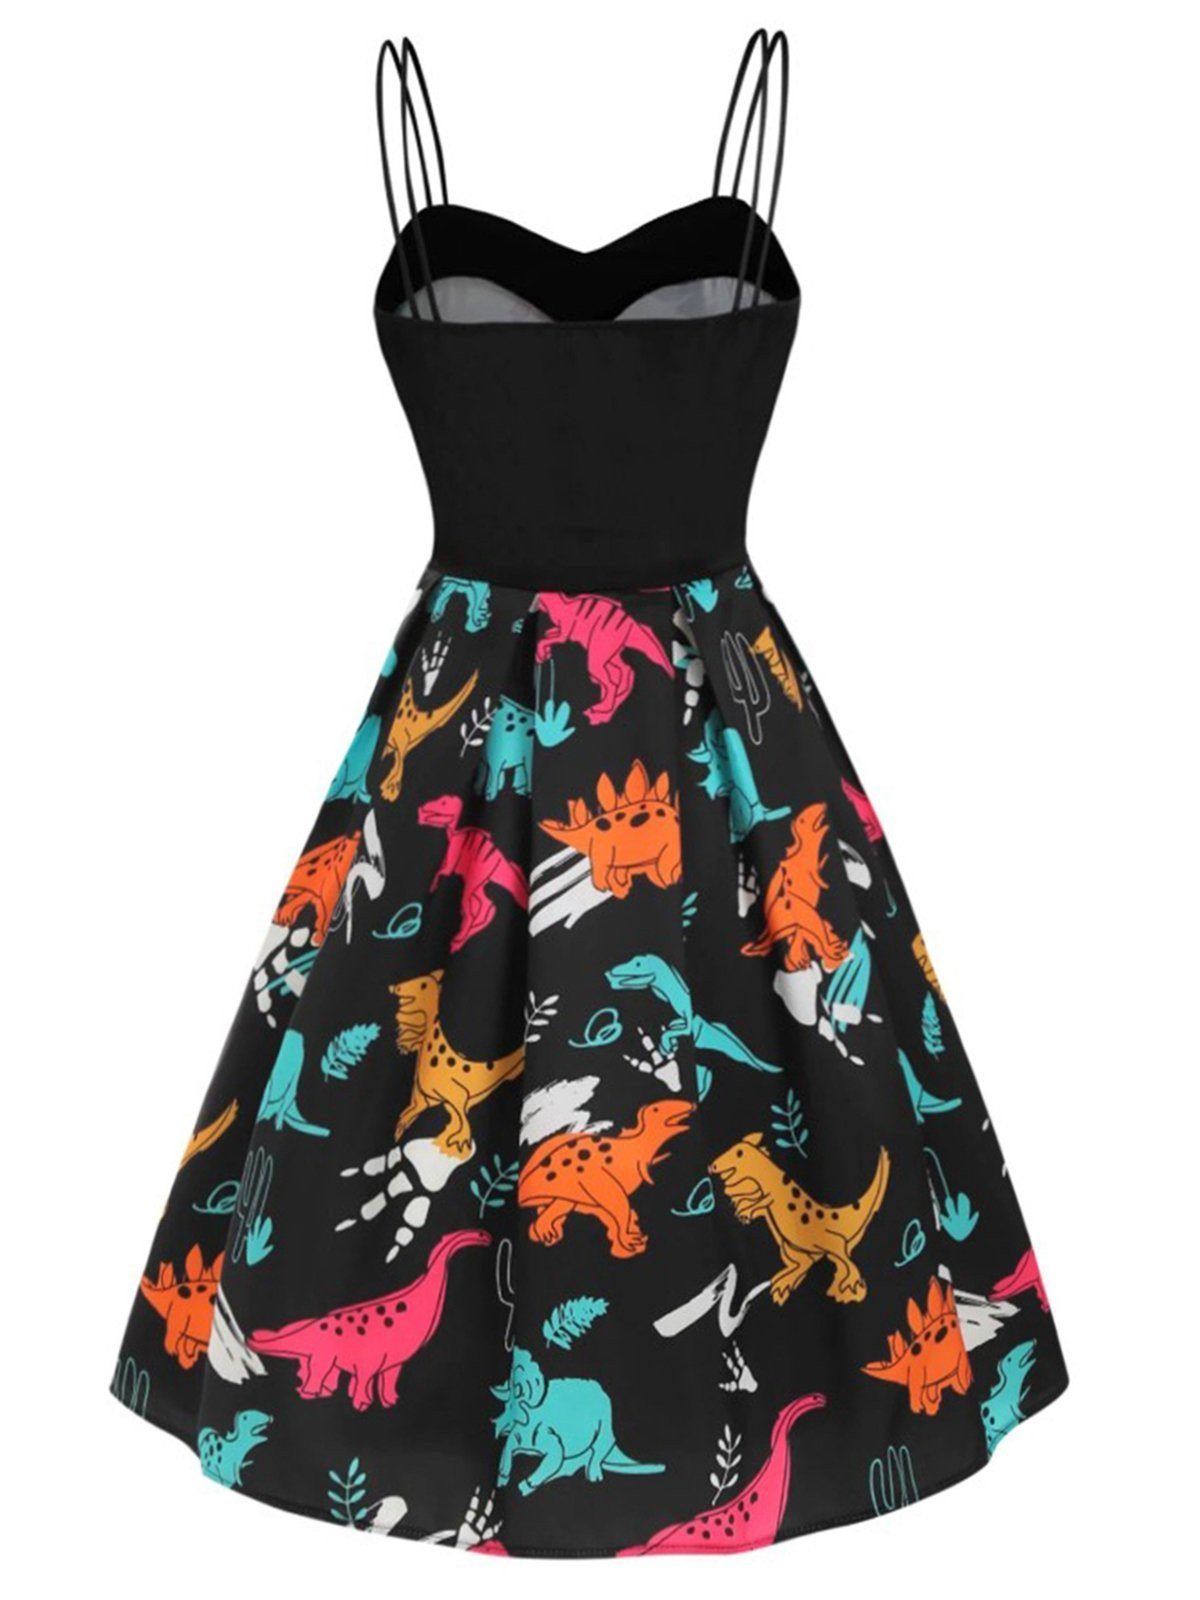 1950s Dinosaurs Strap Swing Dress